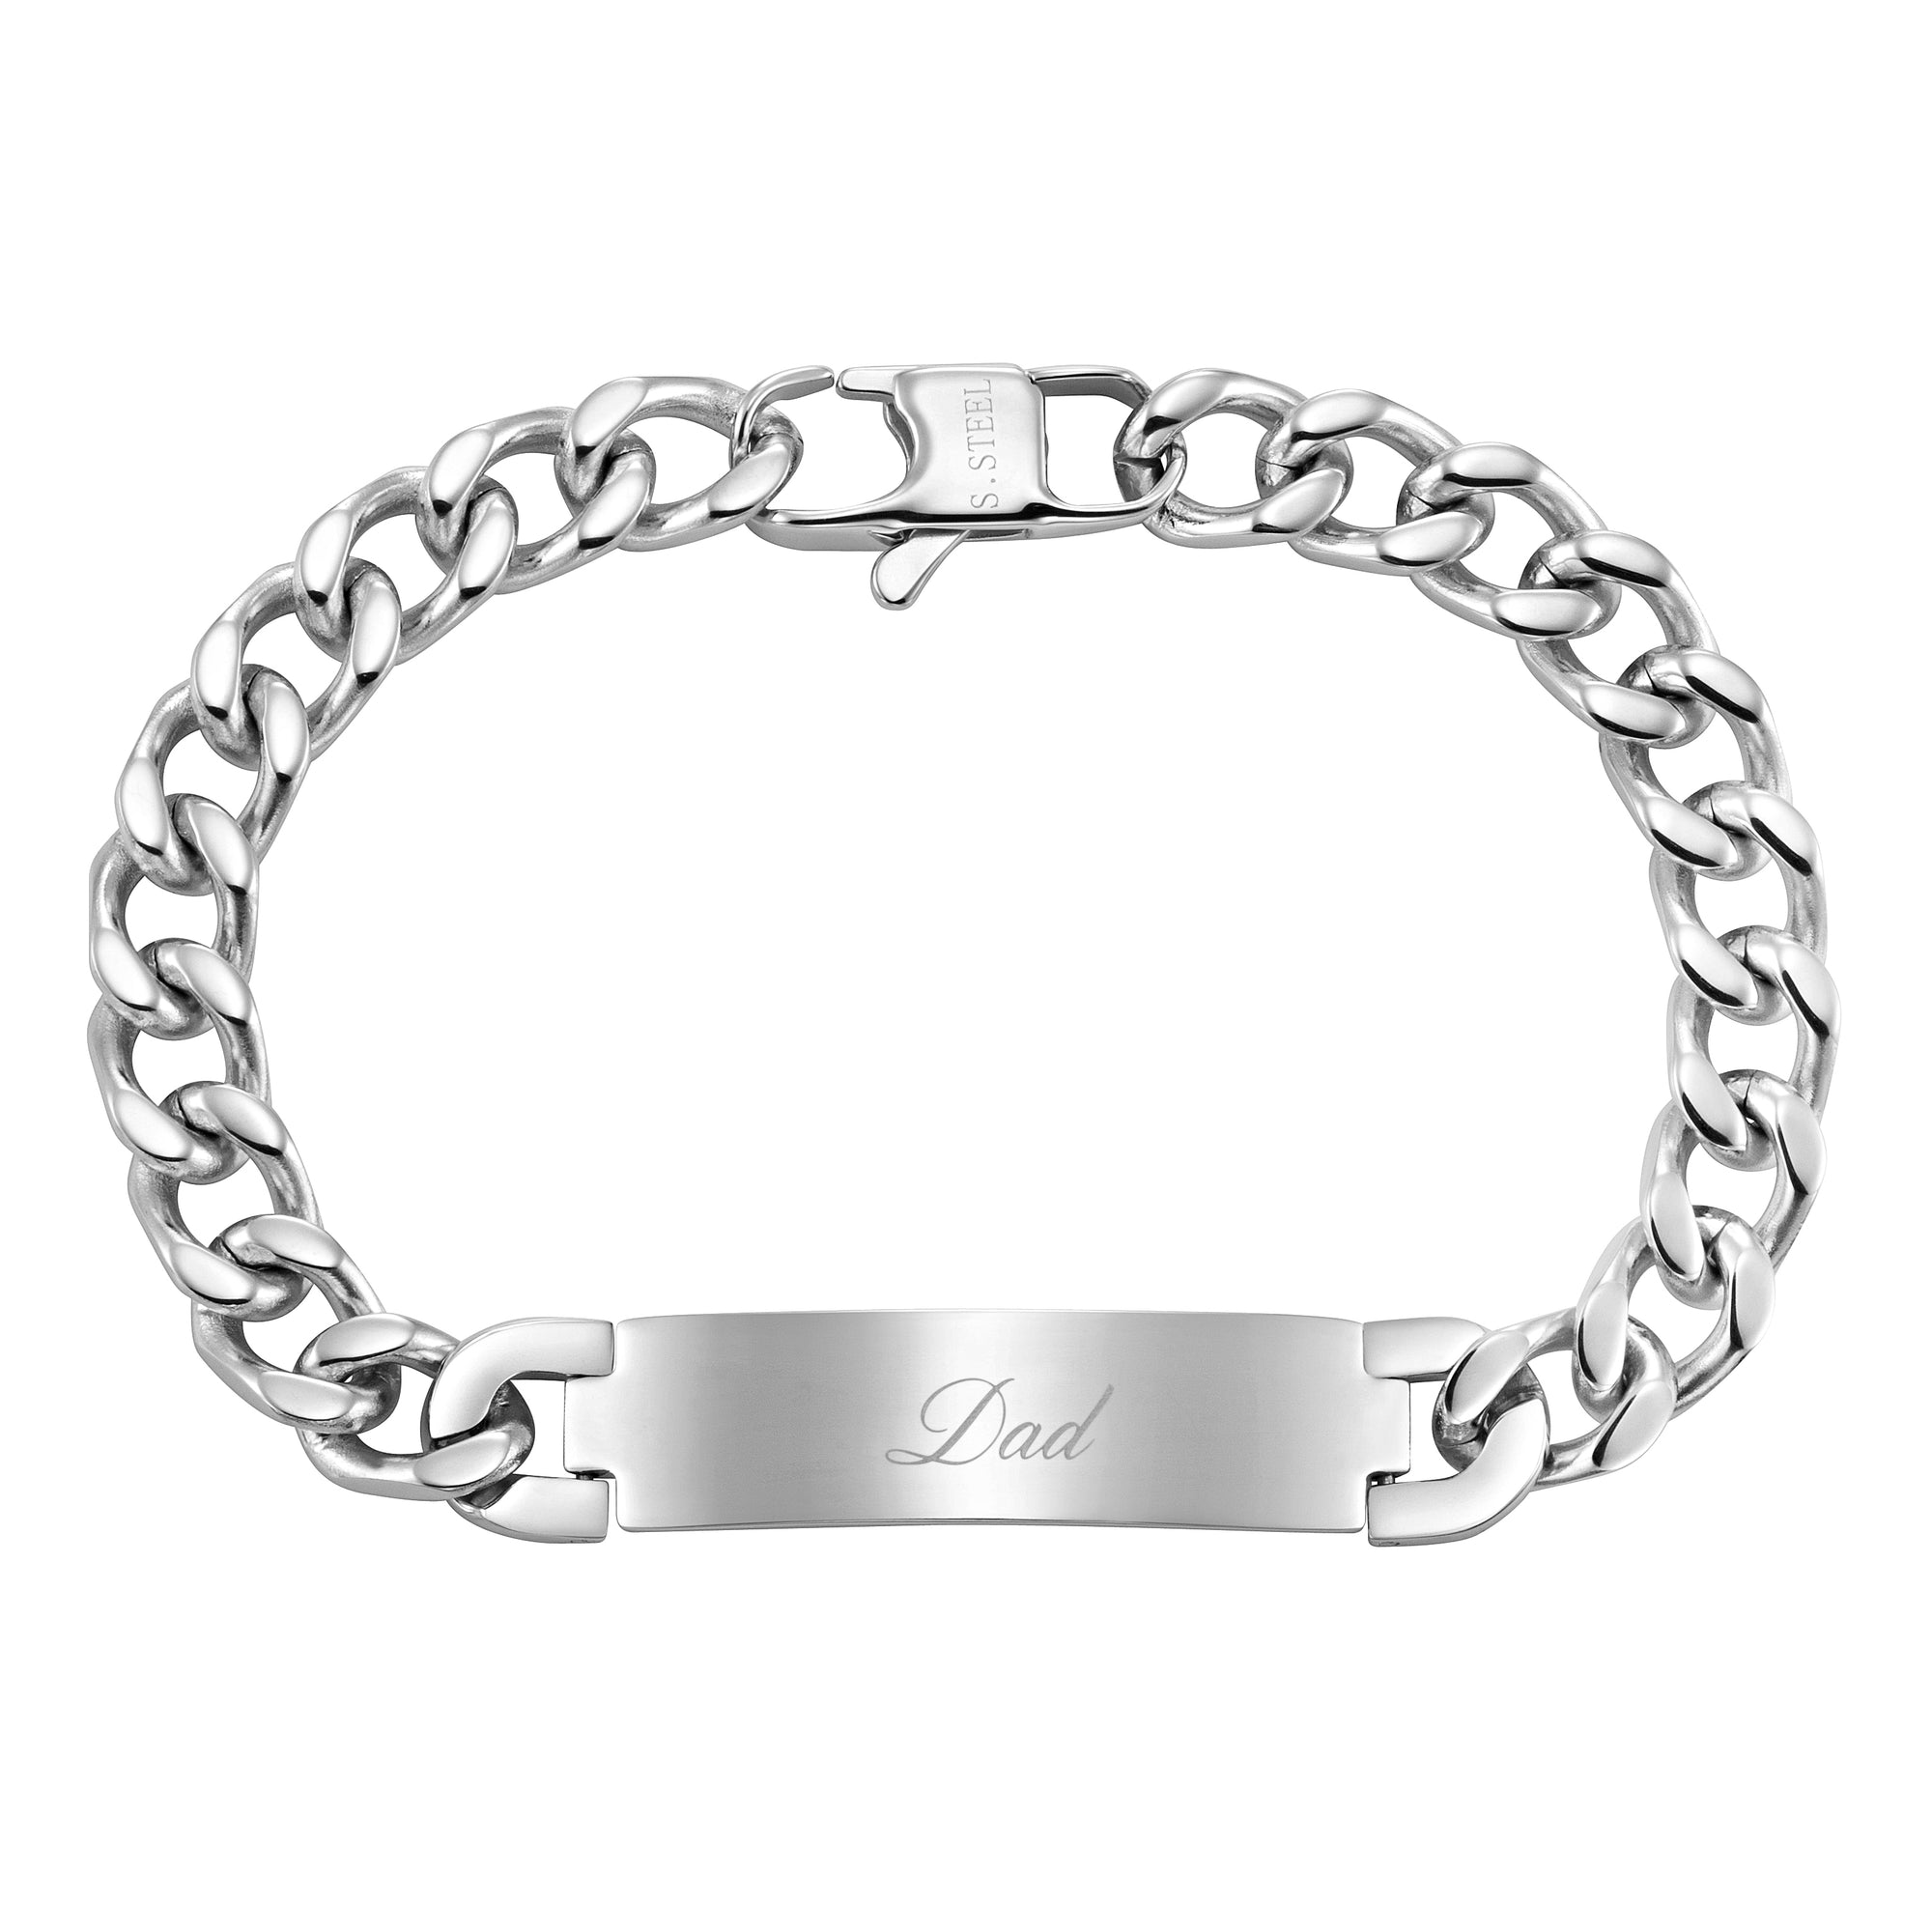 DAD Stainless Steel ID Bracelet Engraved Love You Dad